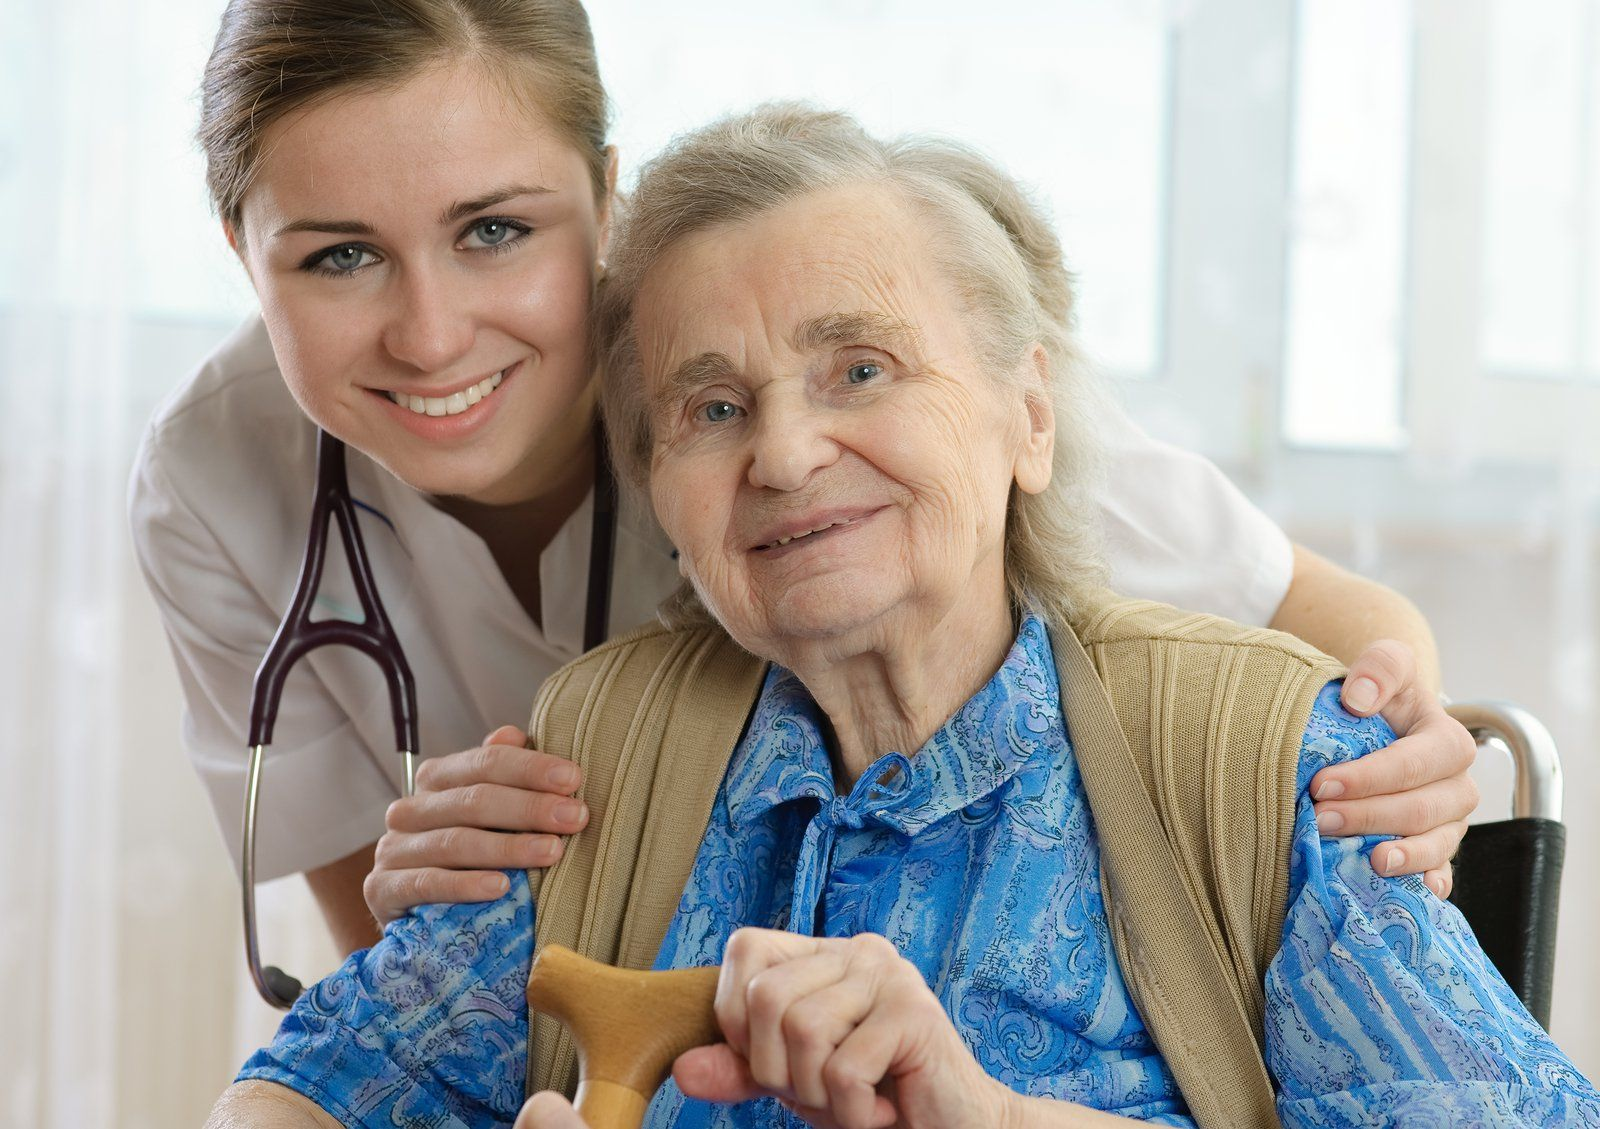 Employers are eager to hire certified nursing assistants